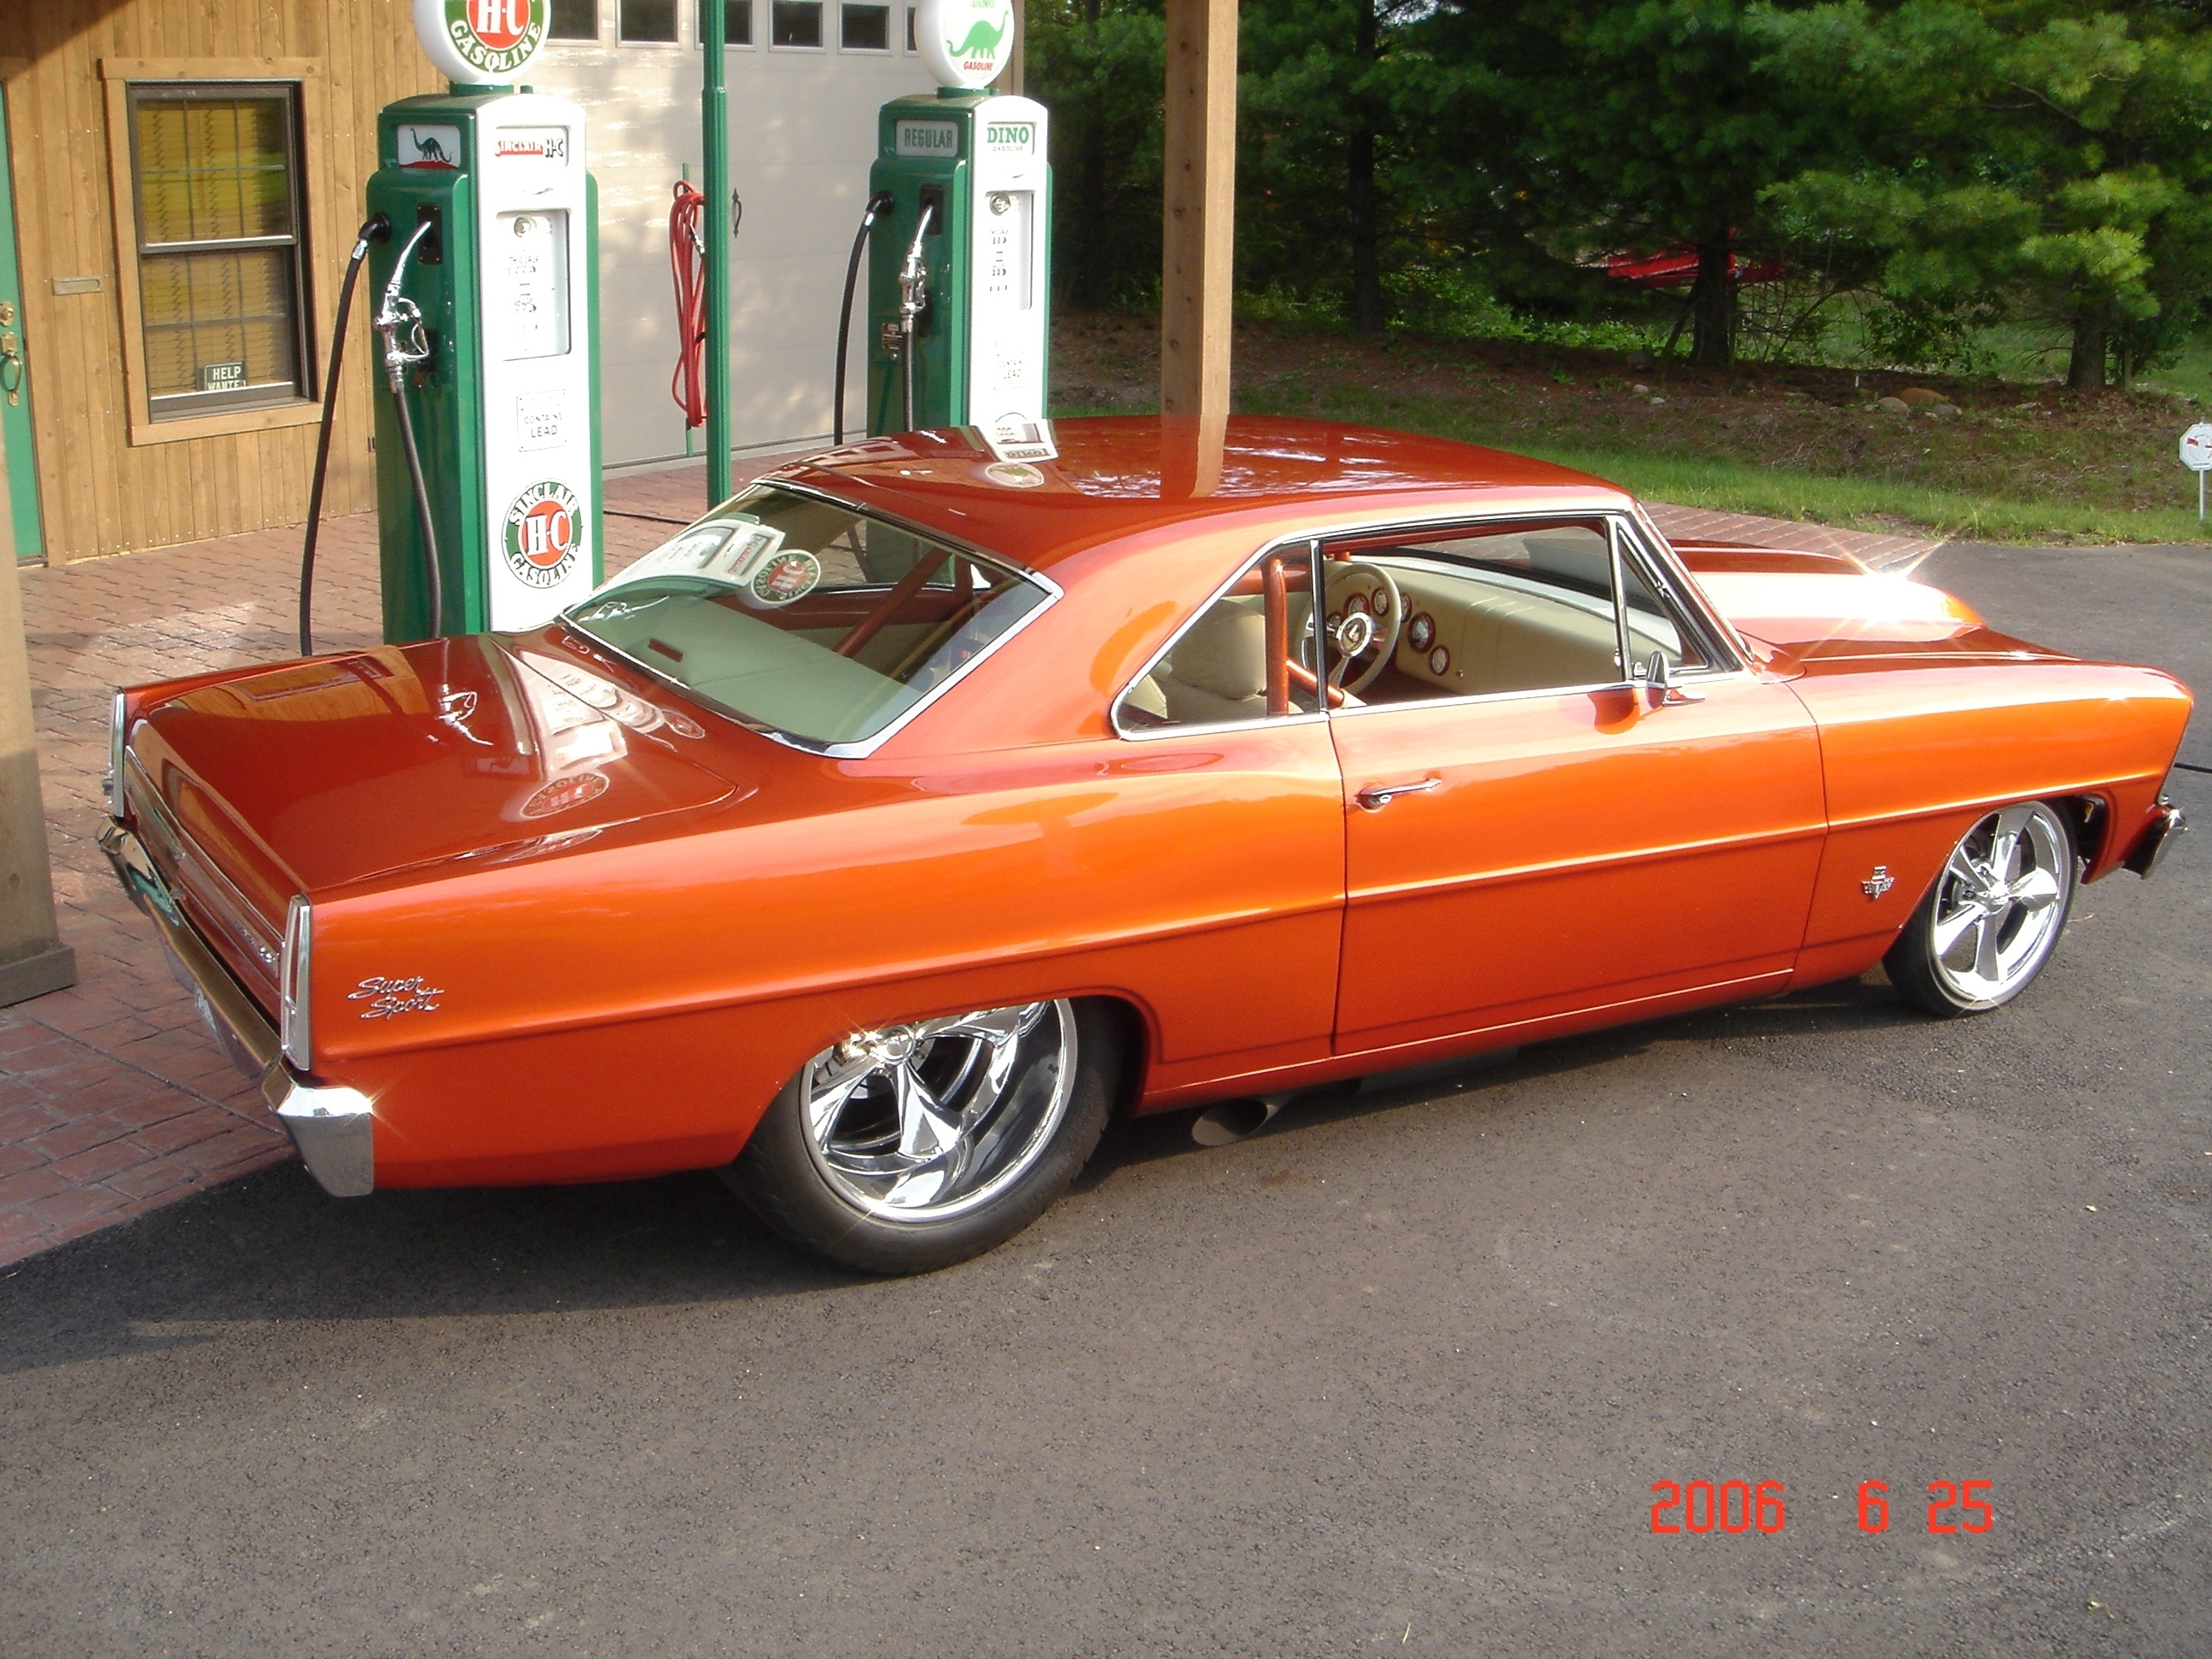 Chevy El Camino Del 59 Al 87 also Custom Chevy Ii For Sale 594779 further Cartouche Classic Ford Upholstery together with Sale further CHEVROLET MALIBU hot rod rods drag racing race engine f. on 1966 chevy nova colors